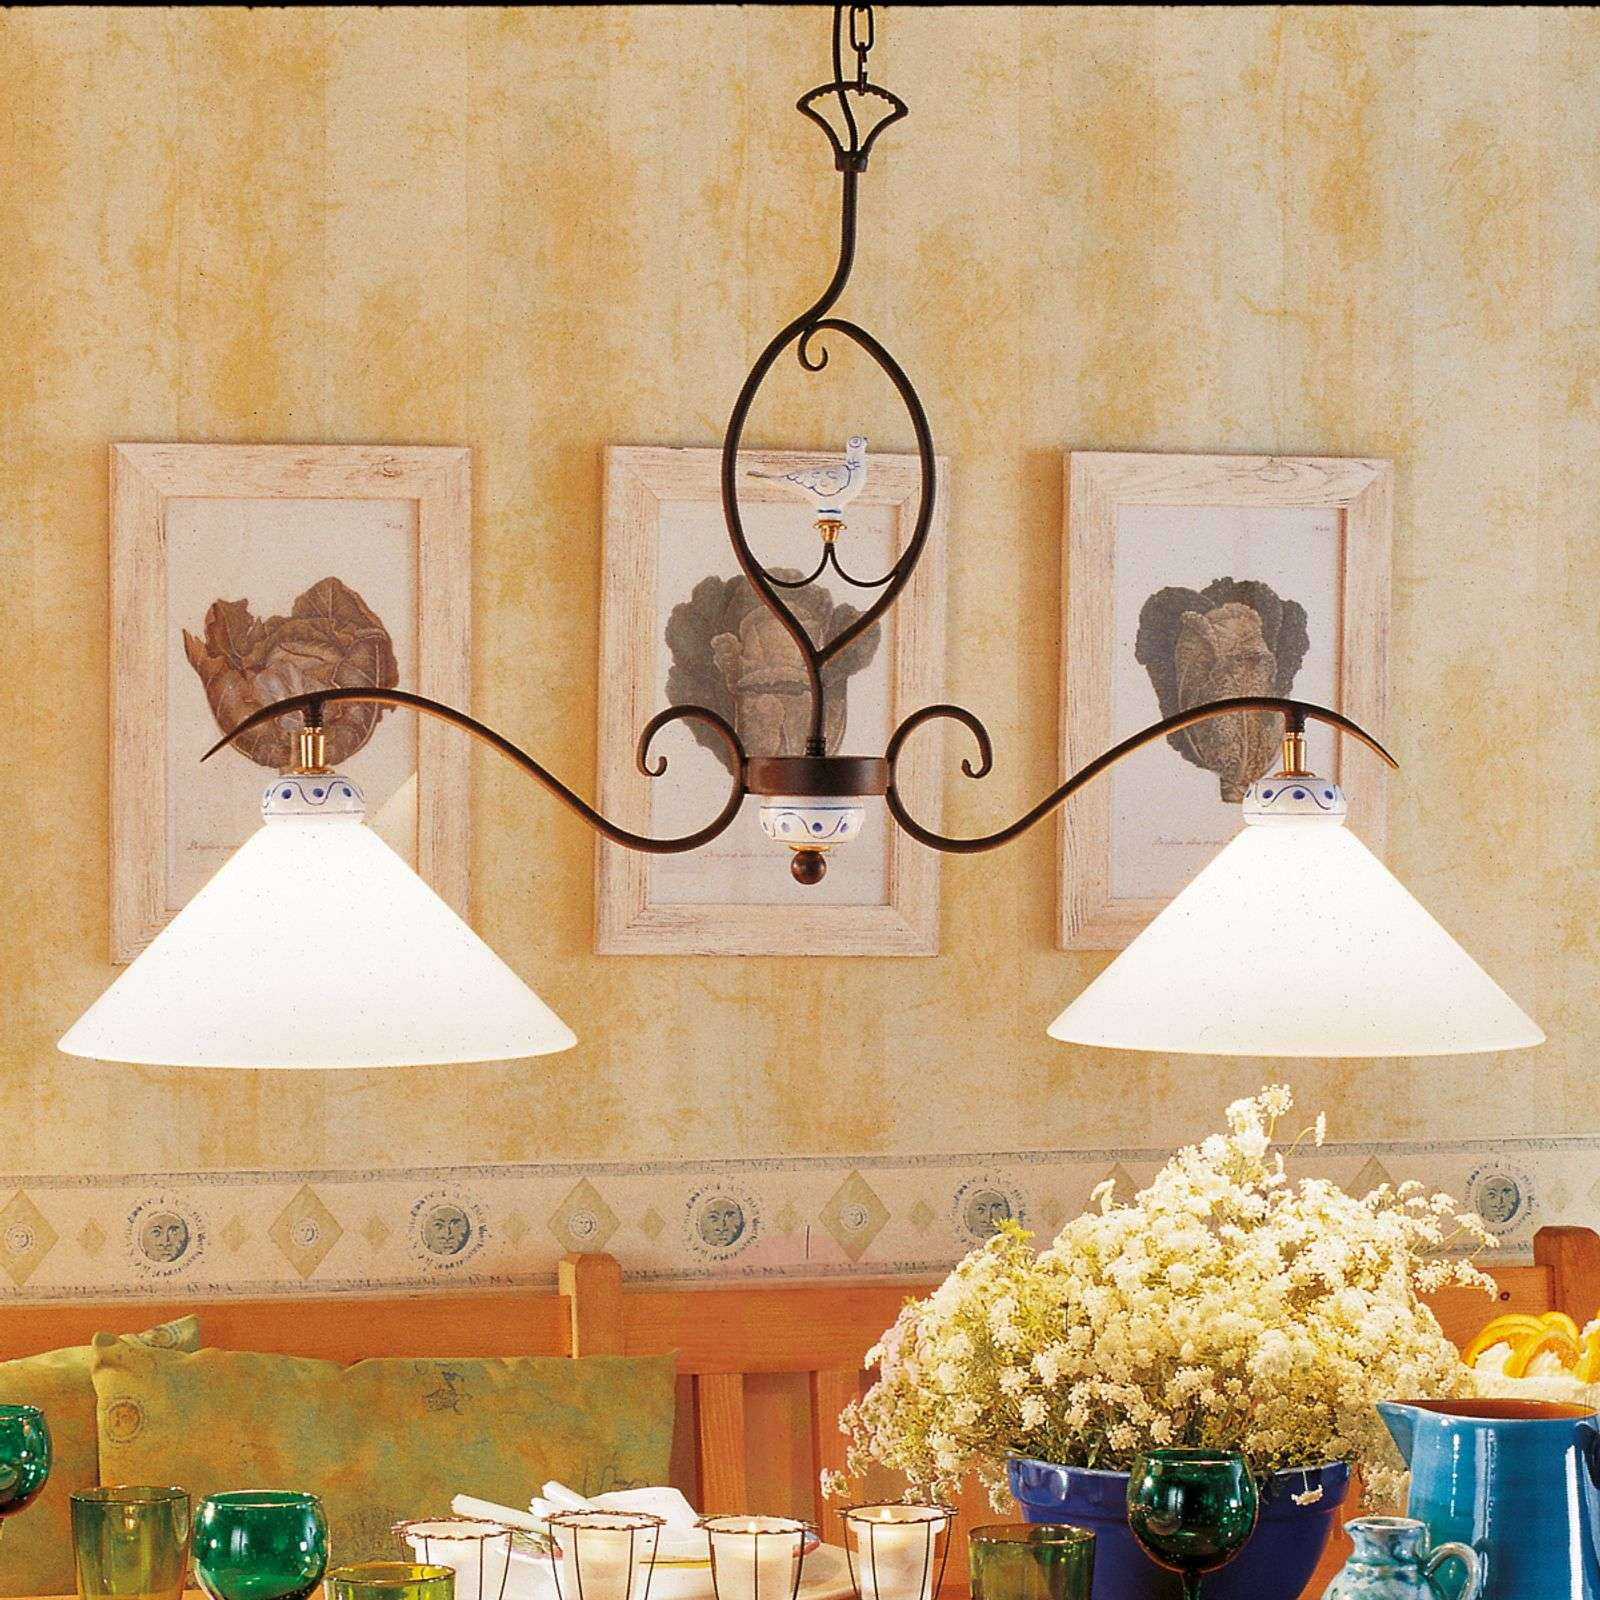 PROVENCE CHALET, 2-lichts hanglamp-6528097-01